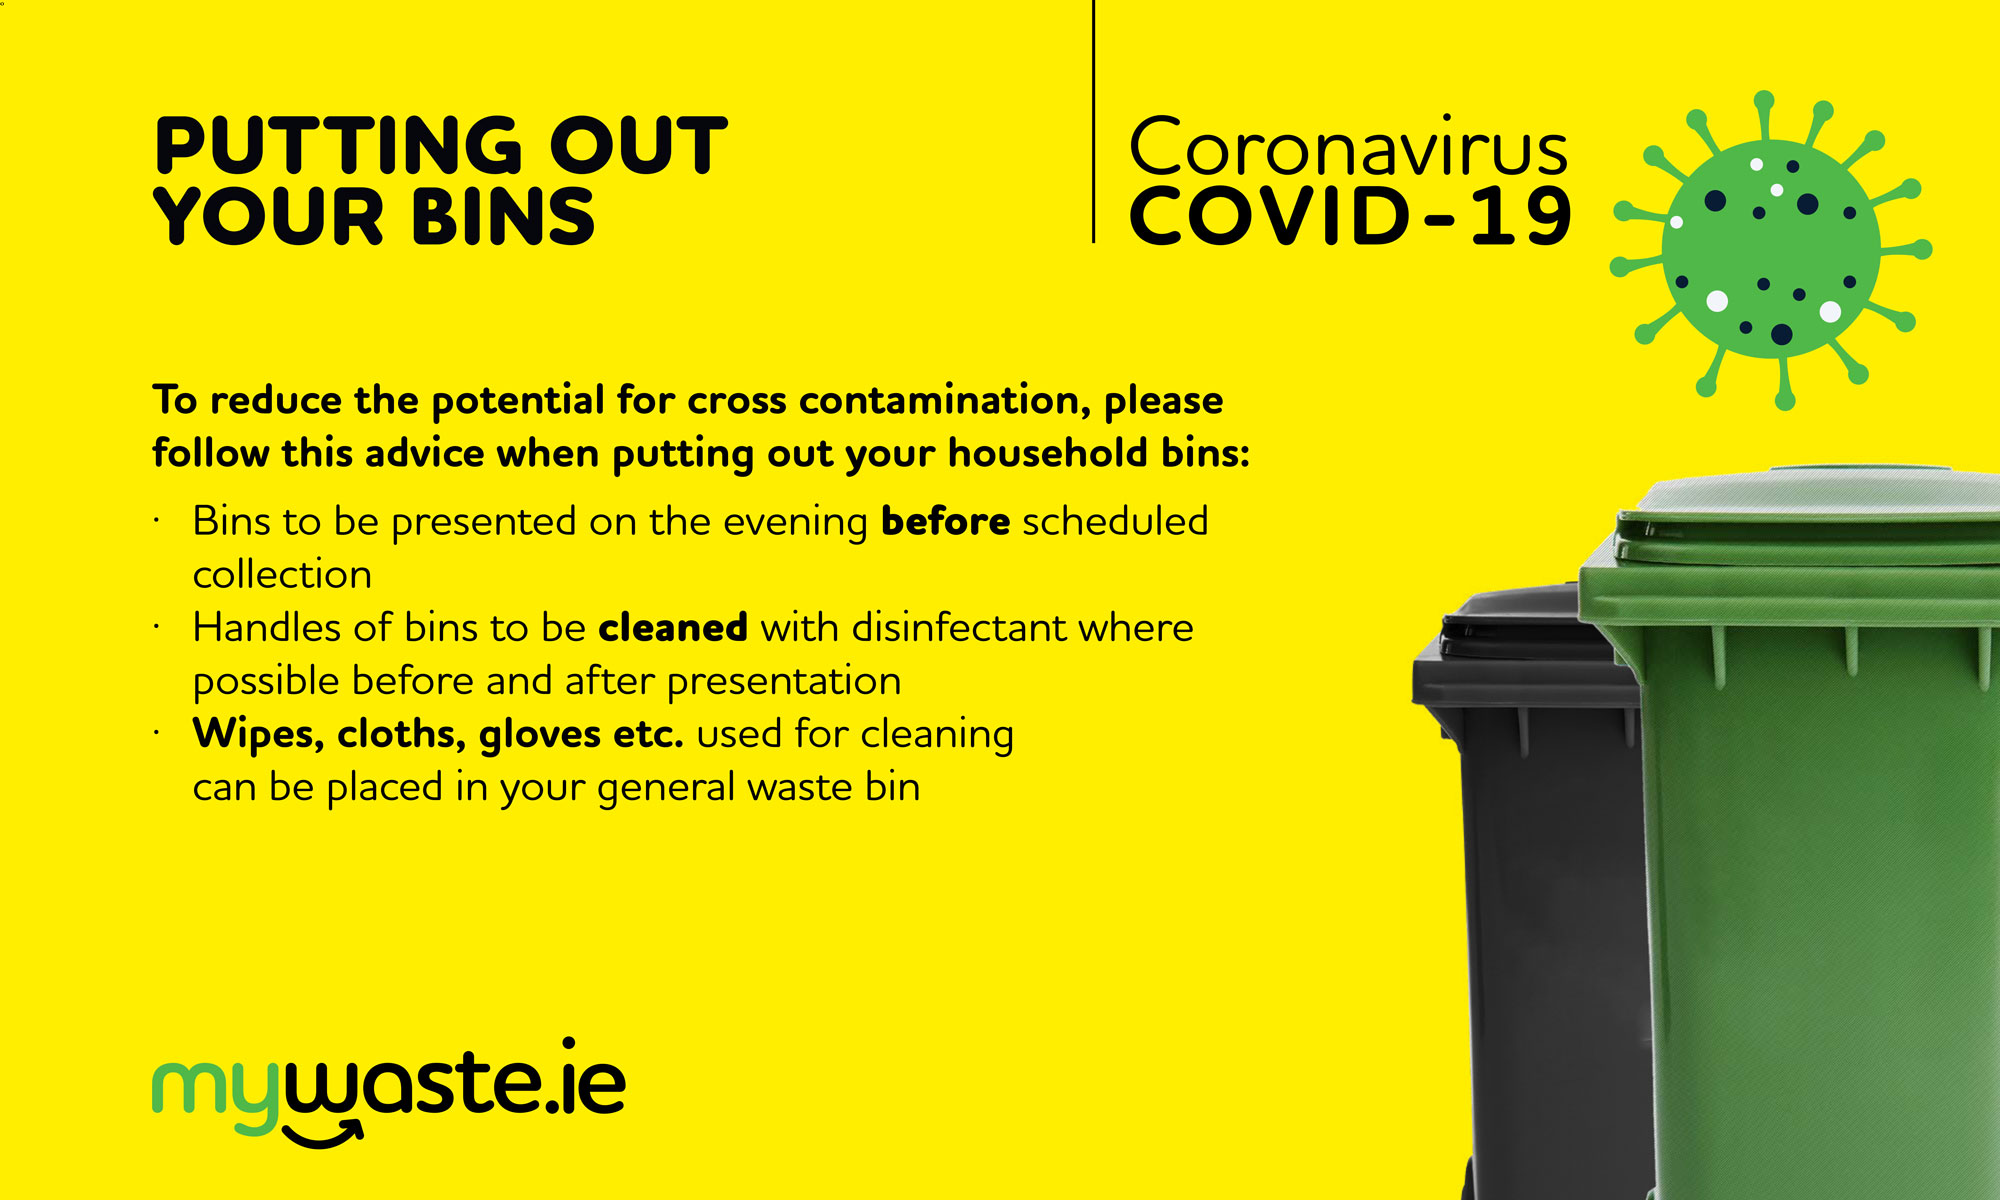 Covid-19-Putting-out-Bins-Notice-2000-x-1200px